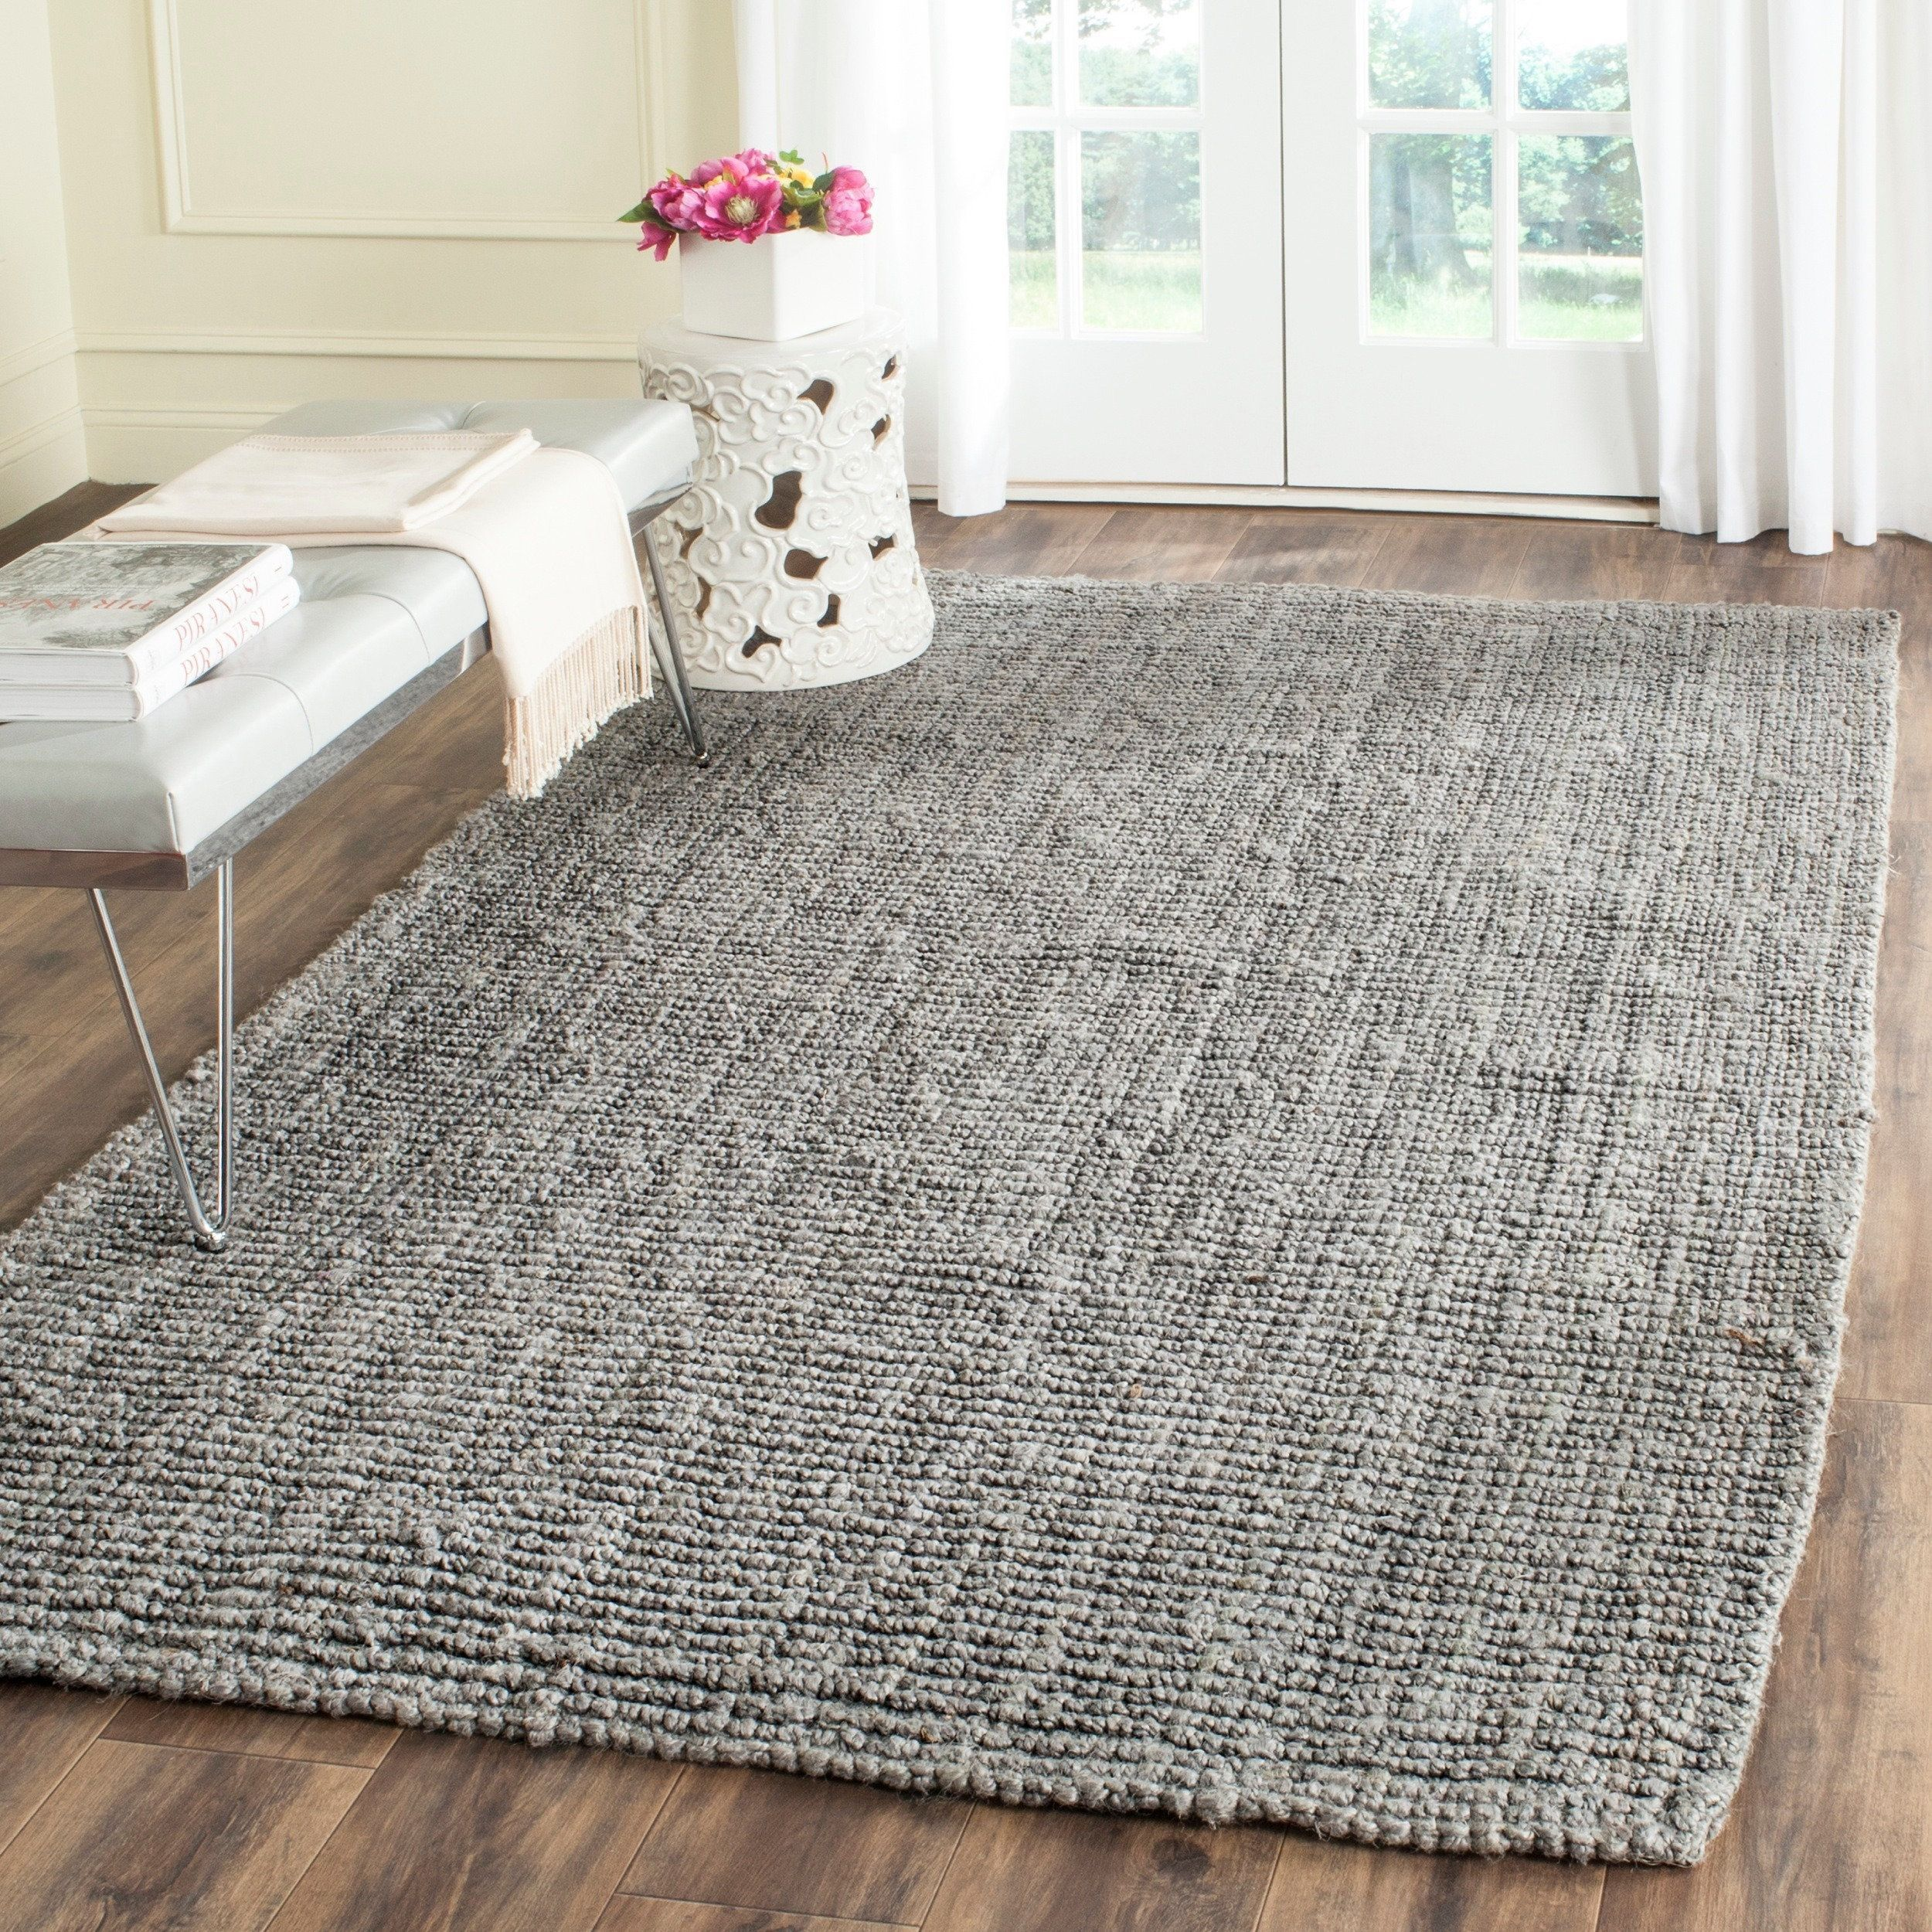 Safavieh Casual Natural Fiber Hand Woven Light Grey Chunky Thick Jute Rug 3 X 5 Nf447g Size